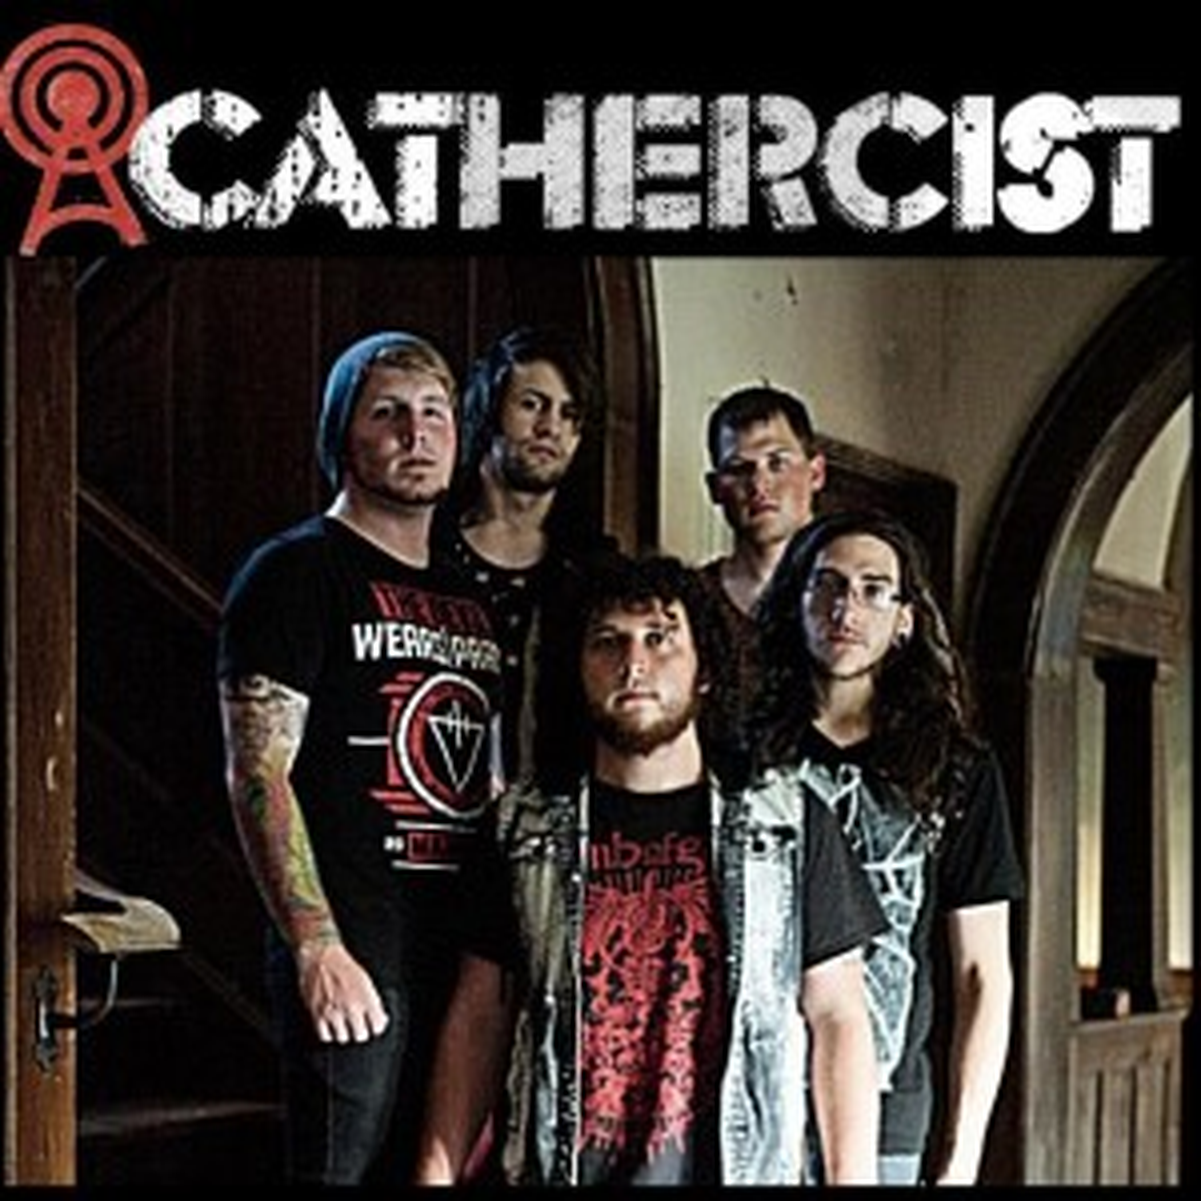 Cathercist wiki, Cathercist review, Cathercist history, Cathercist news